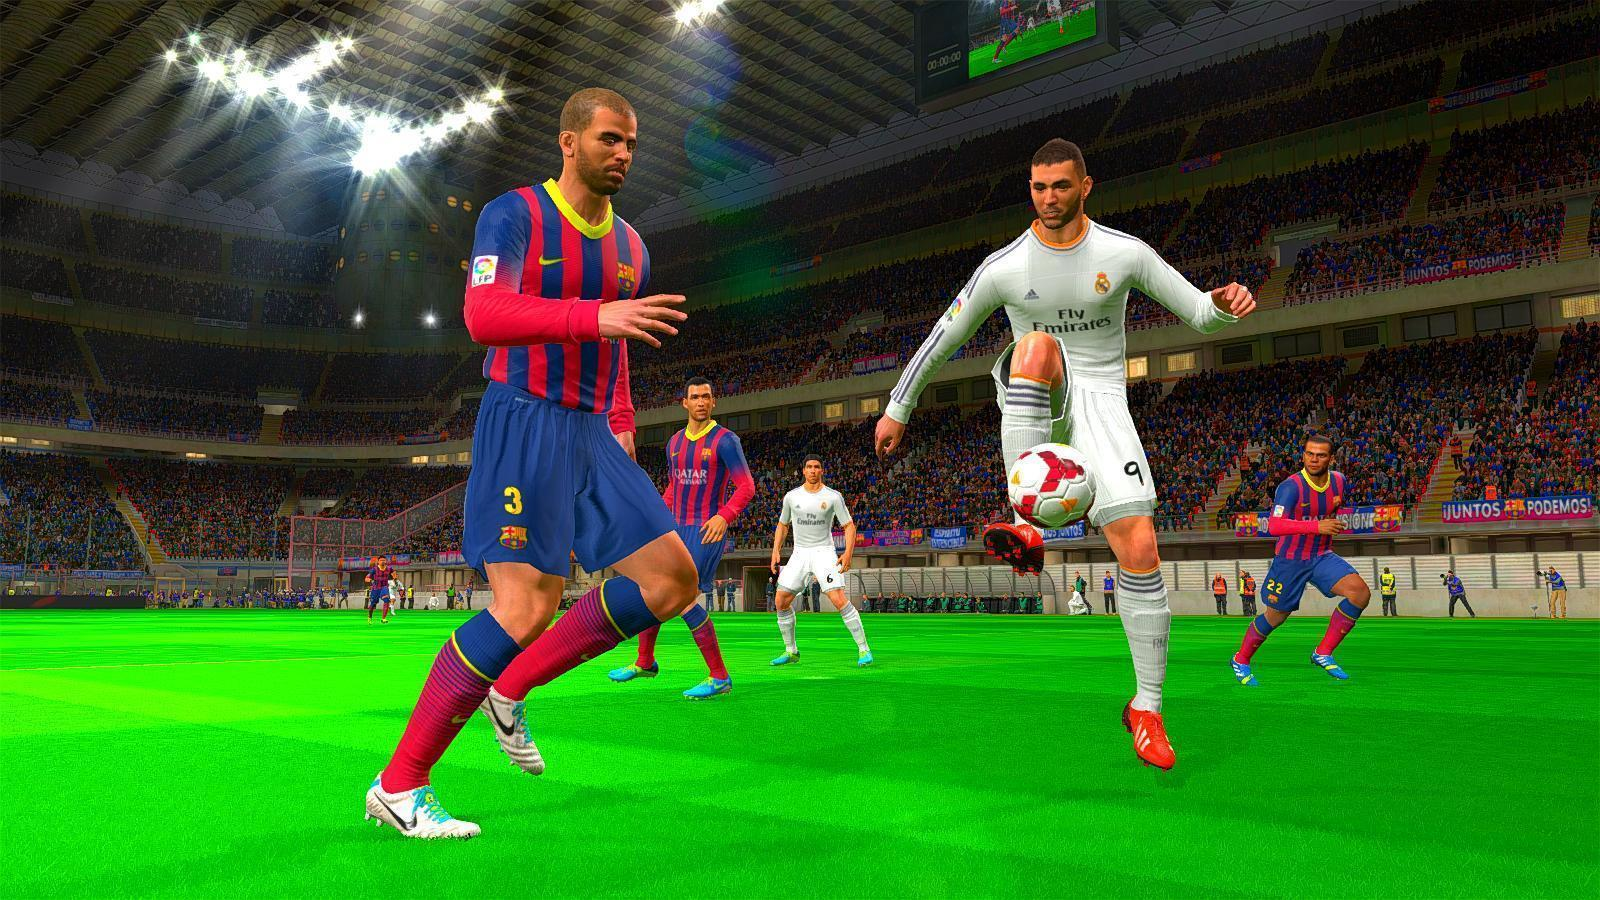 <b>HD FIFA 15 Wallpapers</b> | <b>FIFA 15</b> Best Pictures Collection